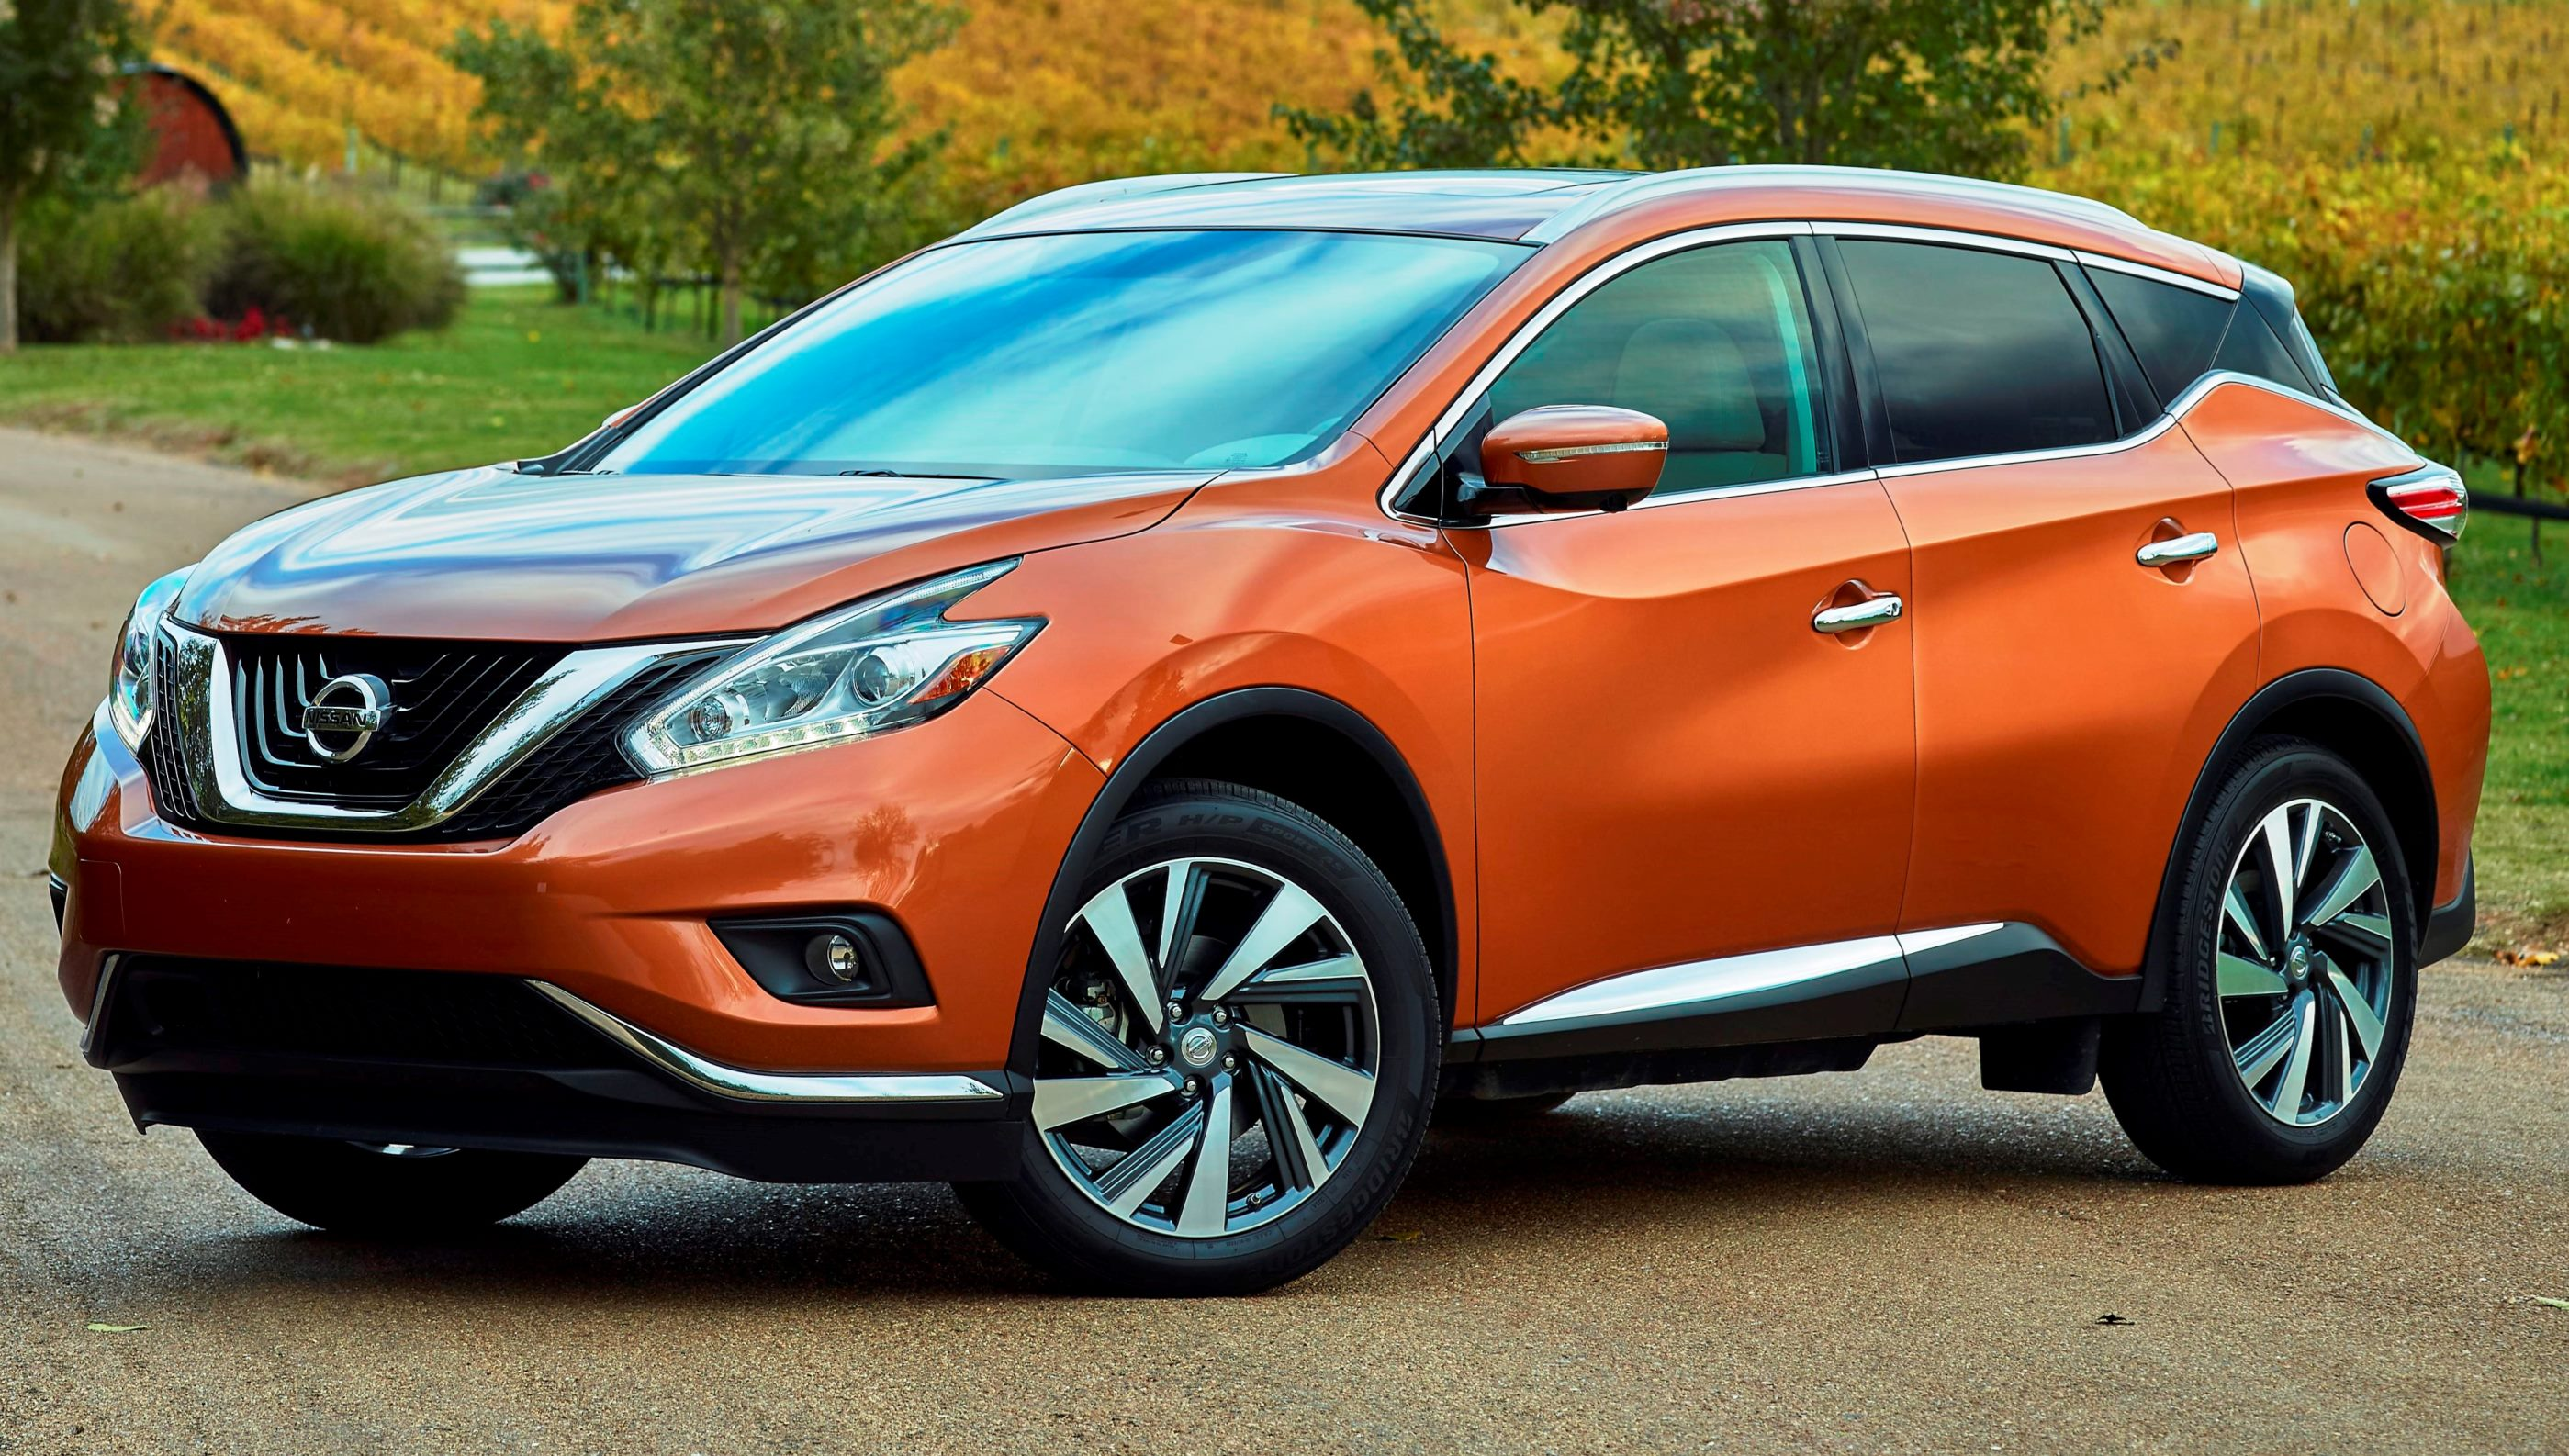 2015 Nissan Murano Pricing Colors And 60 New Photos